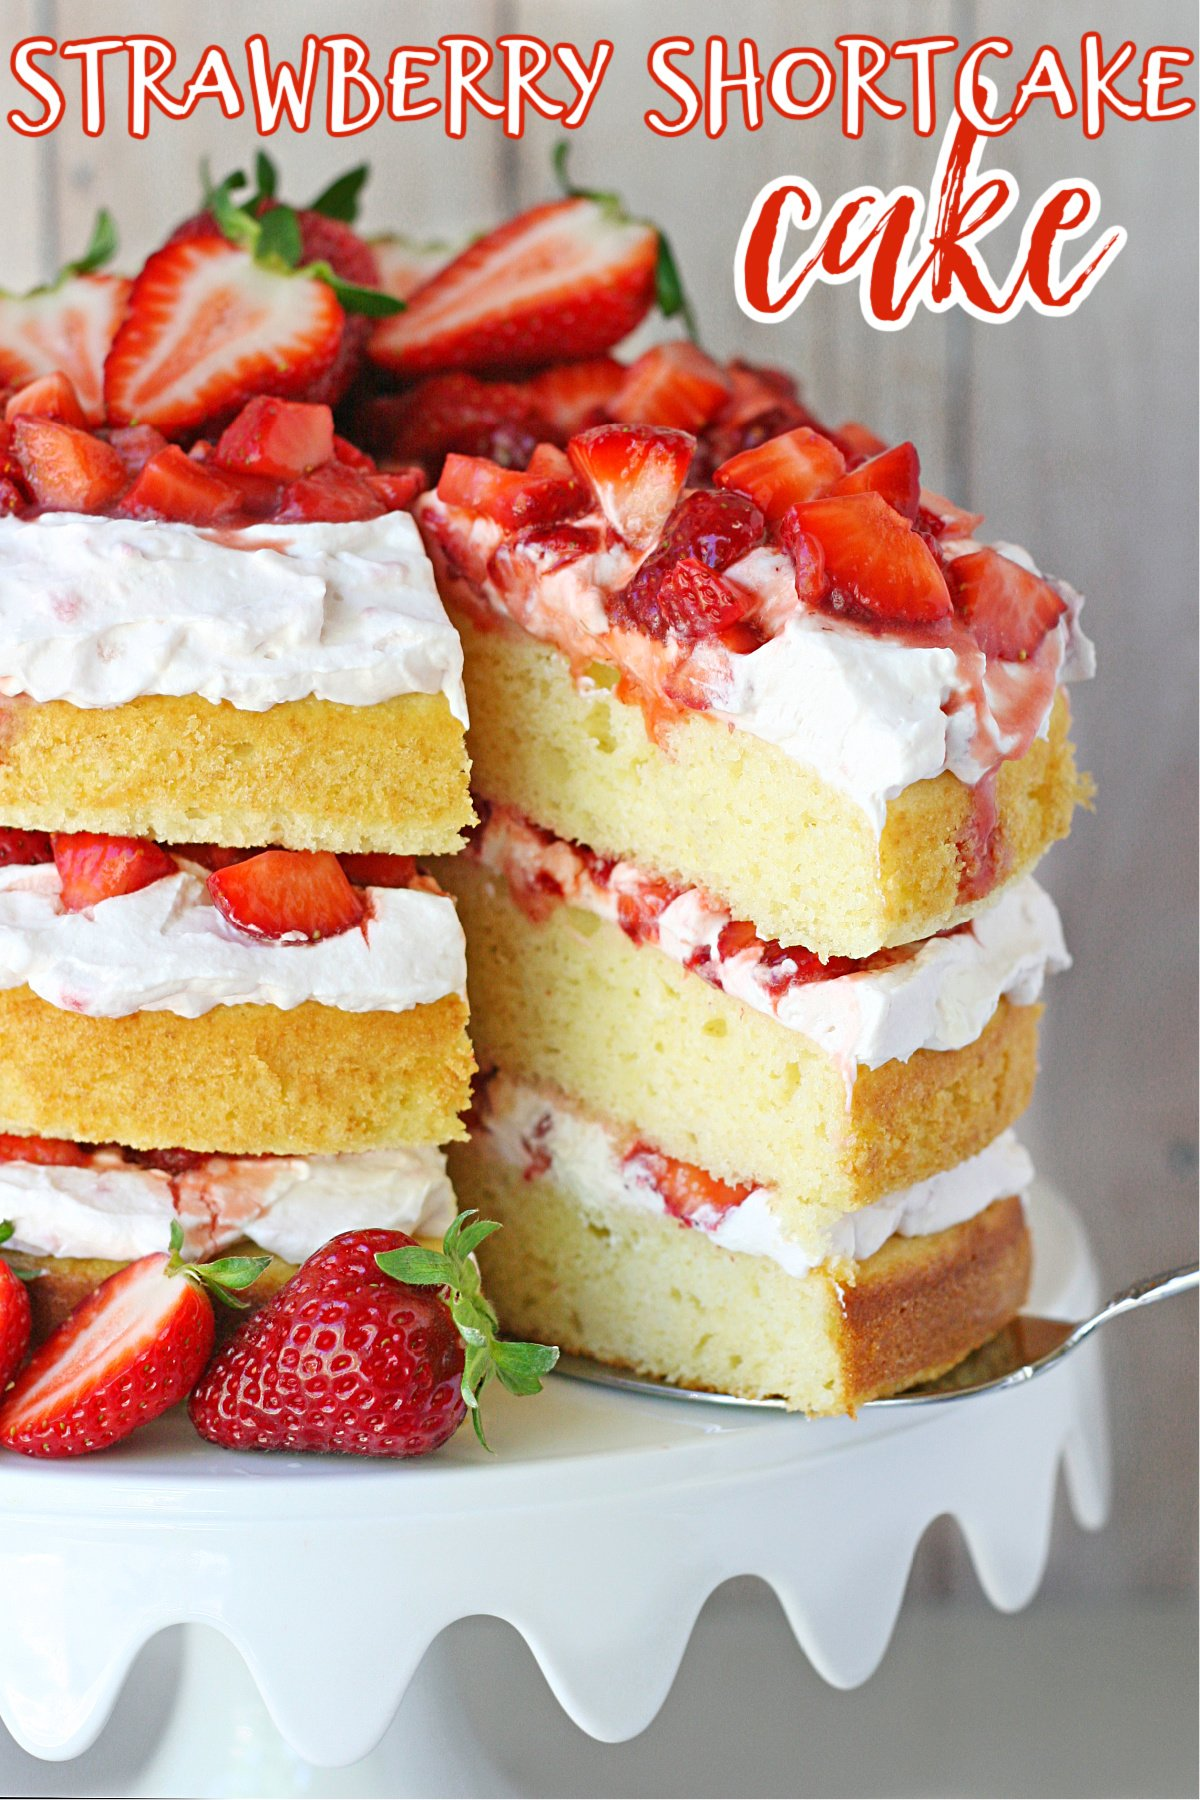 strawberry shortcake cake recipe on white cake stand with text overlay